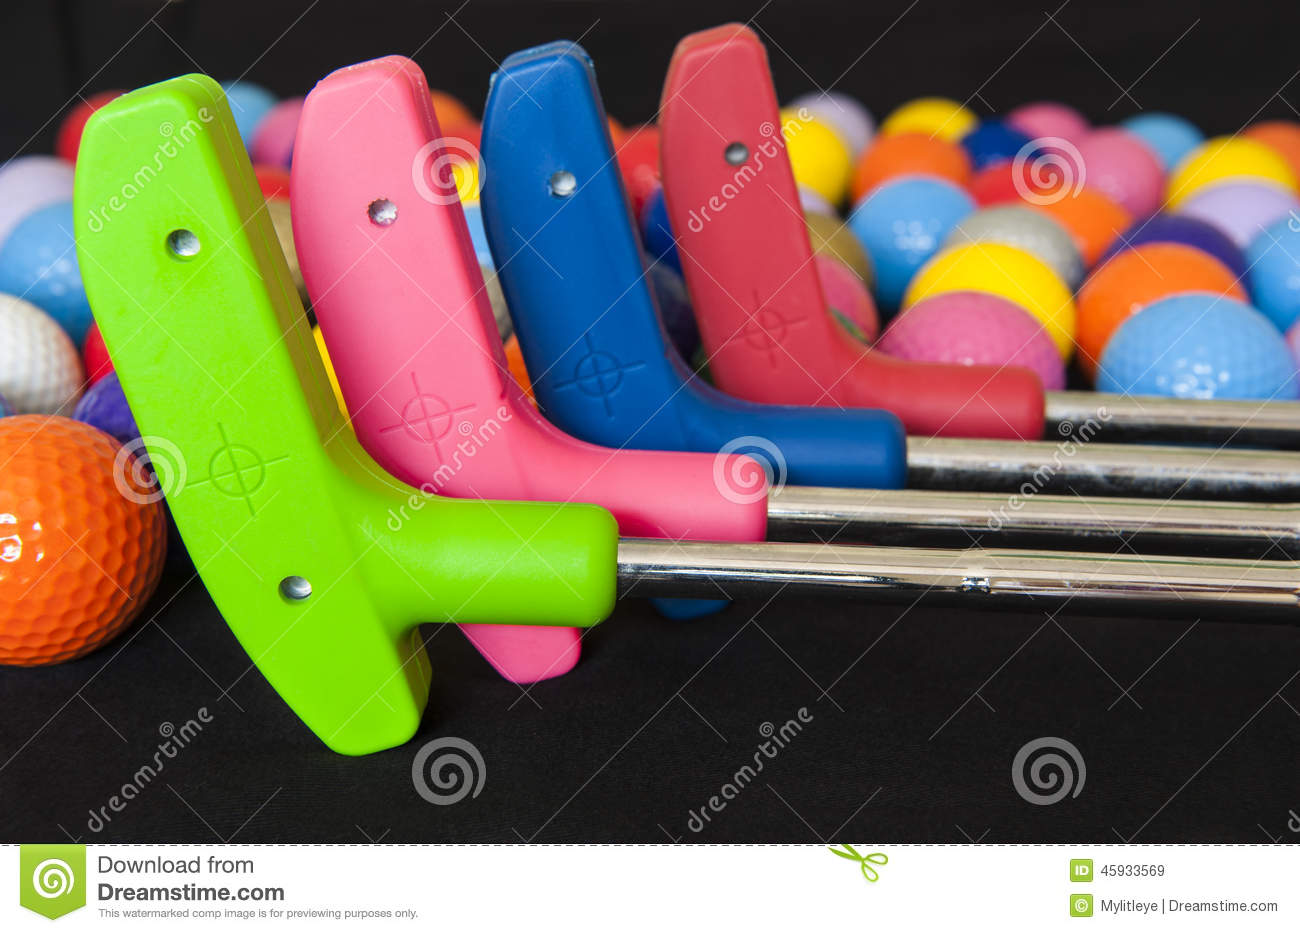 Colorful Golf Balls and Putters